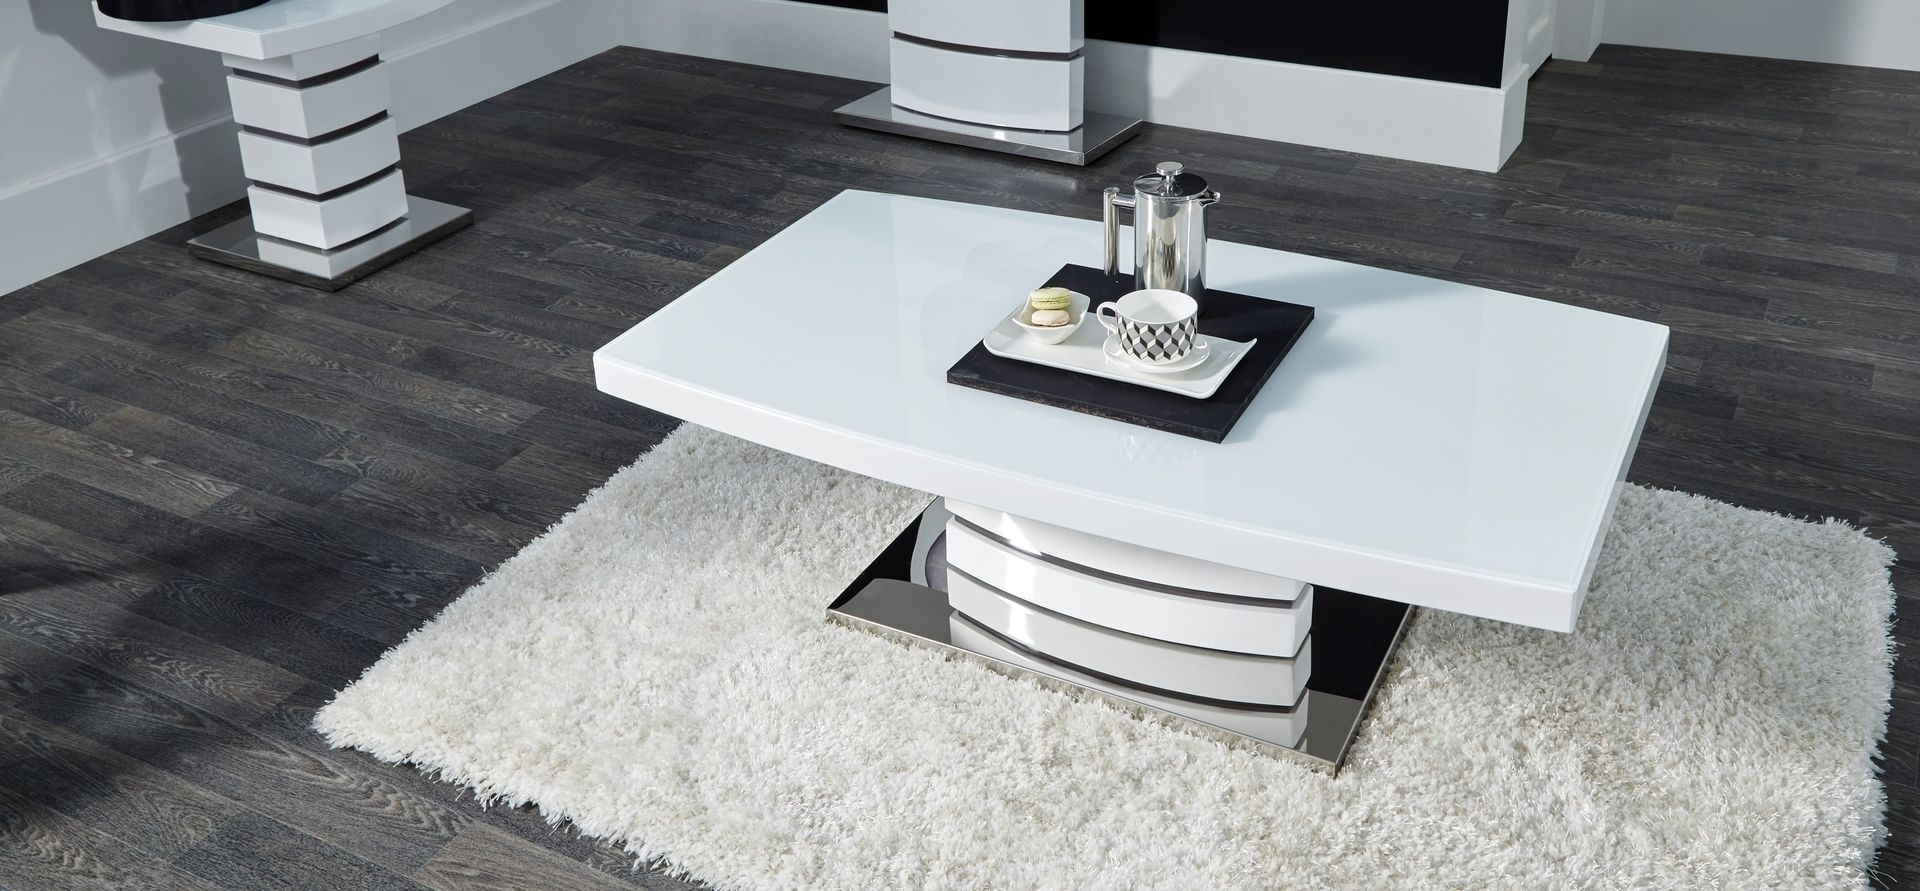 New Soho White Coffee Table – Scs With 2017 Scs Dining Tables (View 13 of 25)